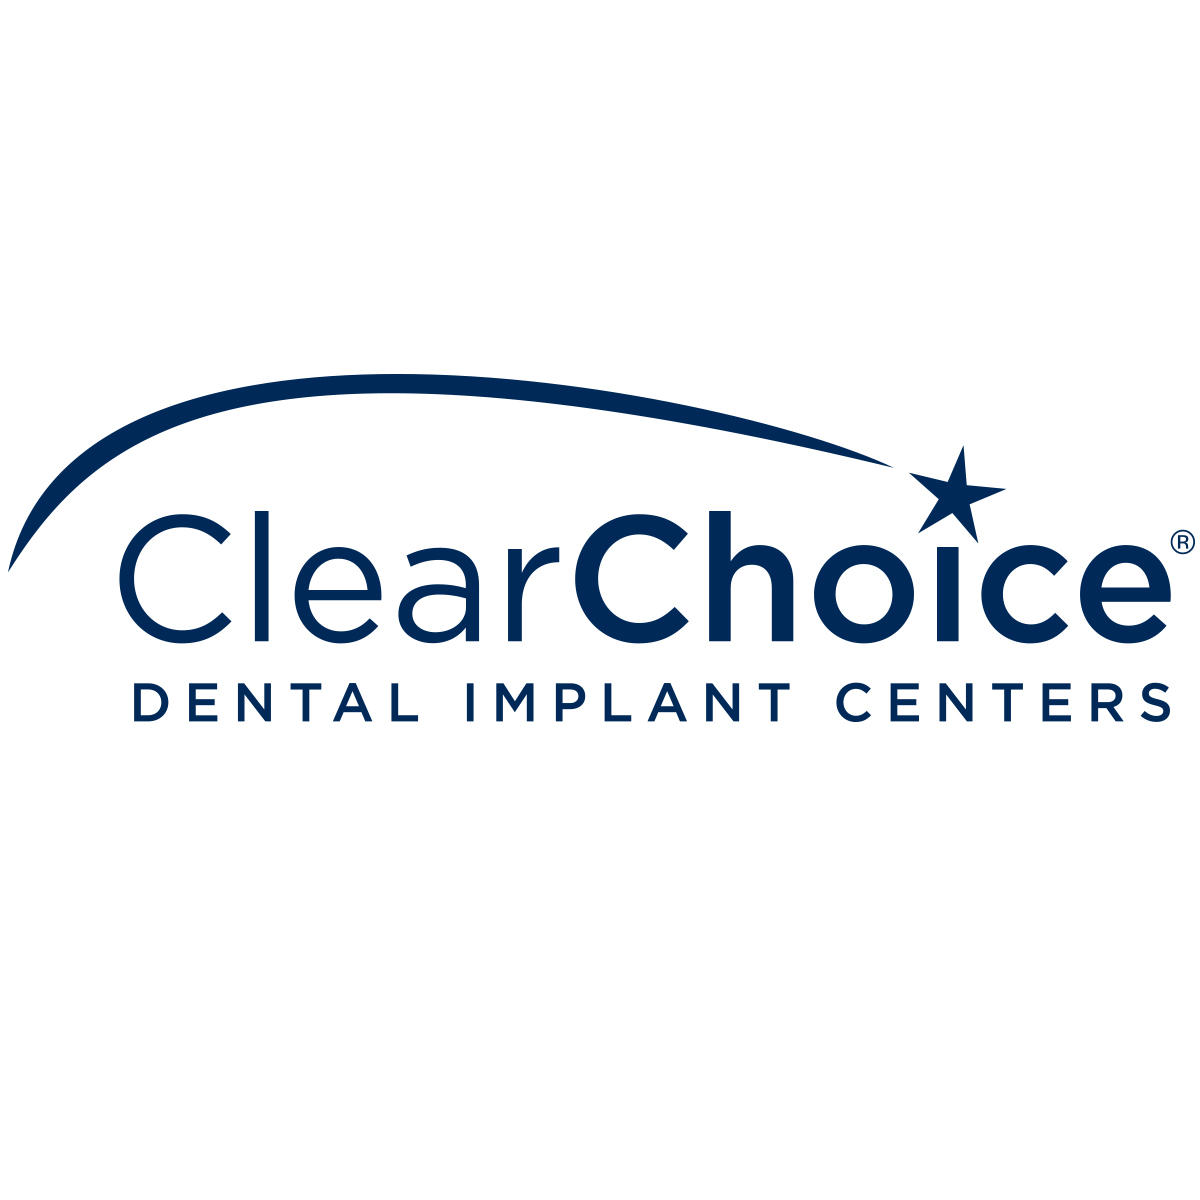 ClearChoice Dental Implant Center image 4